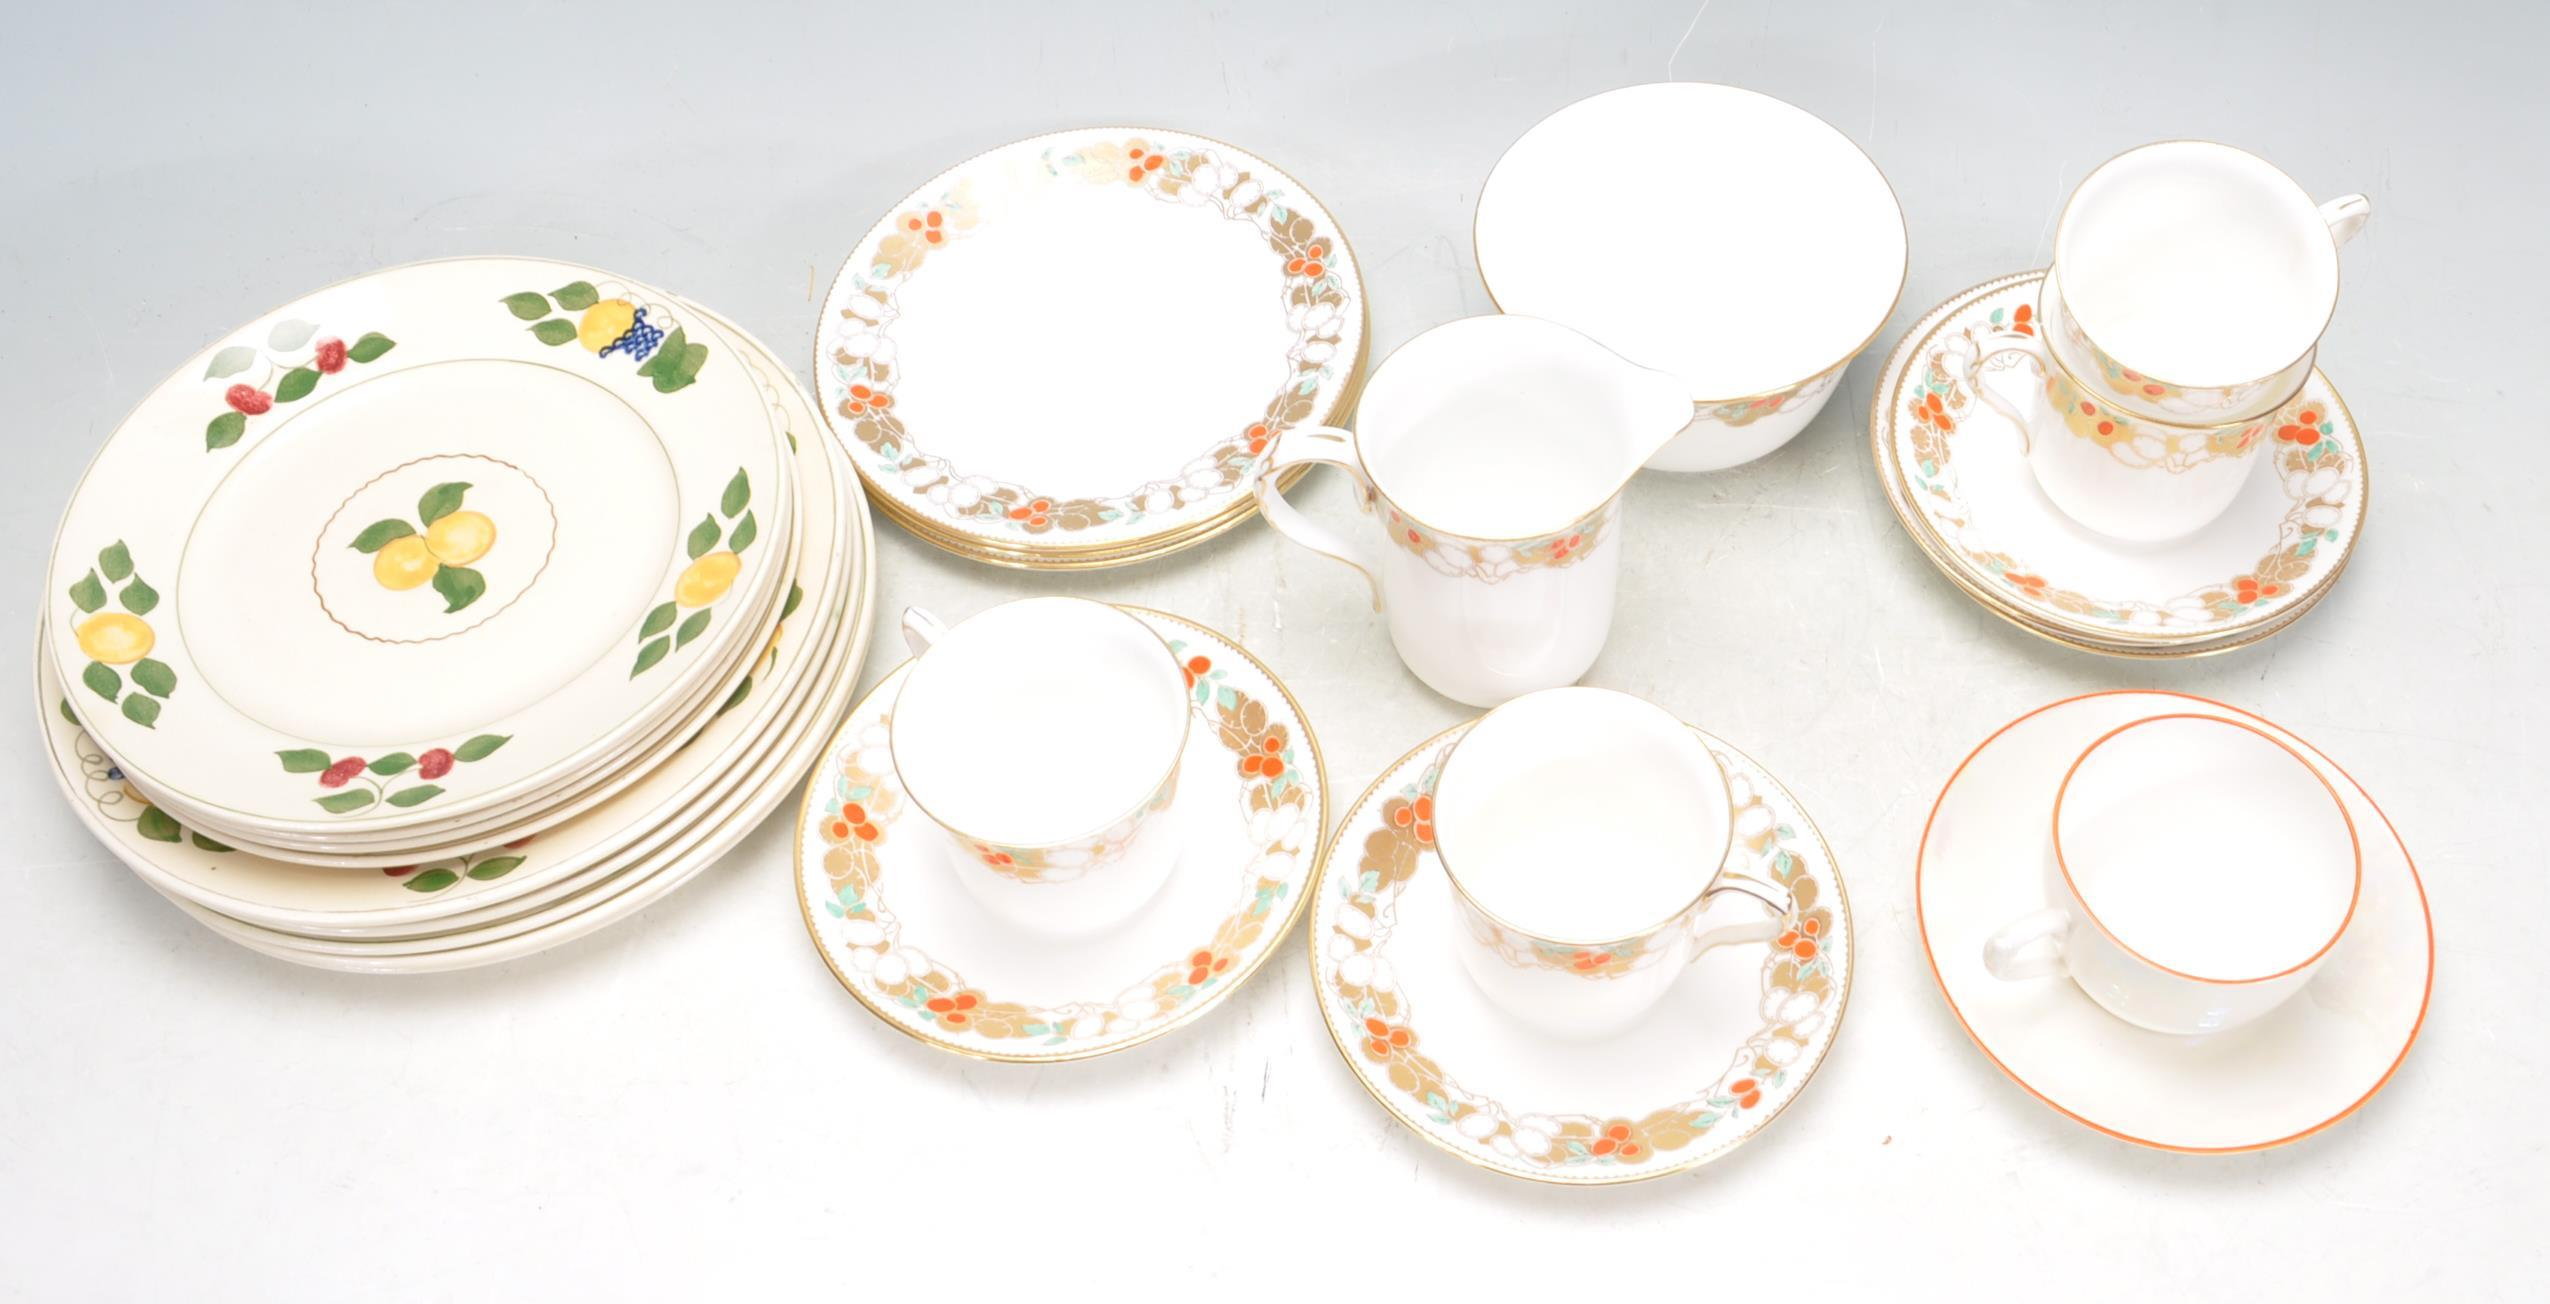 VINTAGE SHELLY TEA SET AND ADAMS PLATES - Image 2 of 14